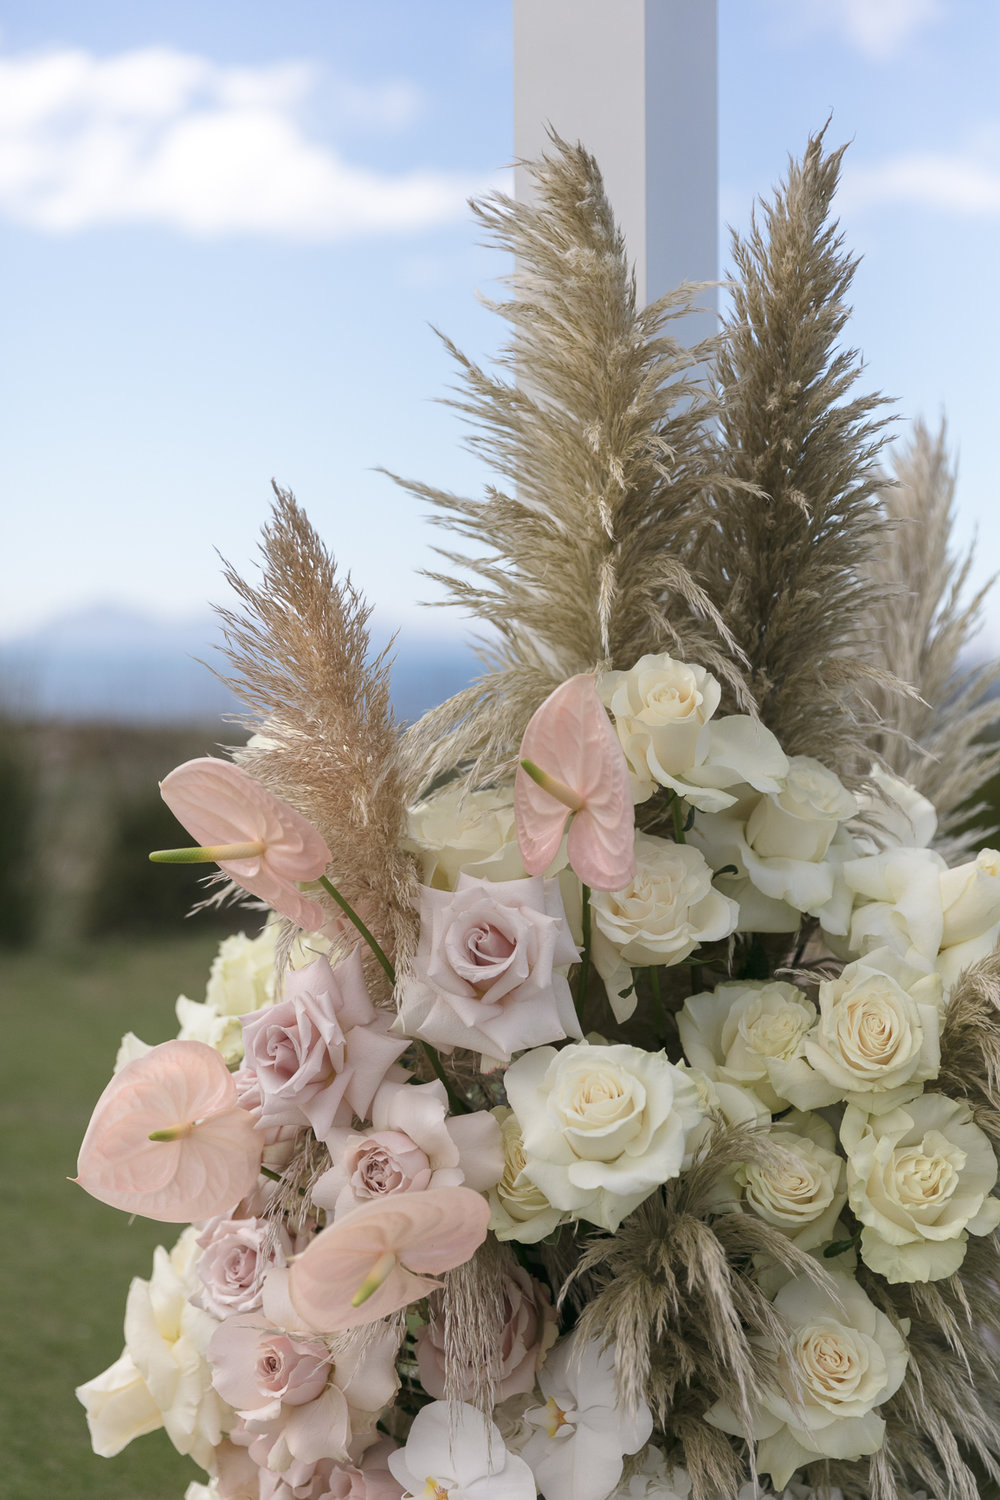 ©MichelleWeir-Blush-TaraIti-Wedding-72dpi-036.jpg